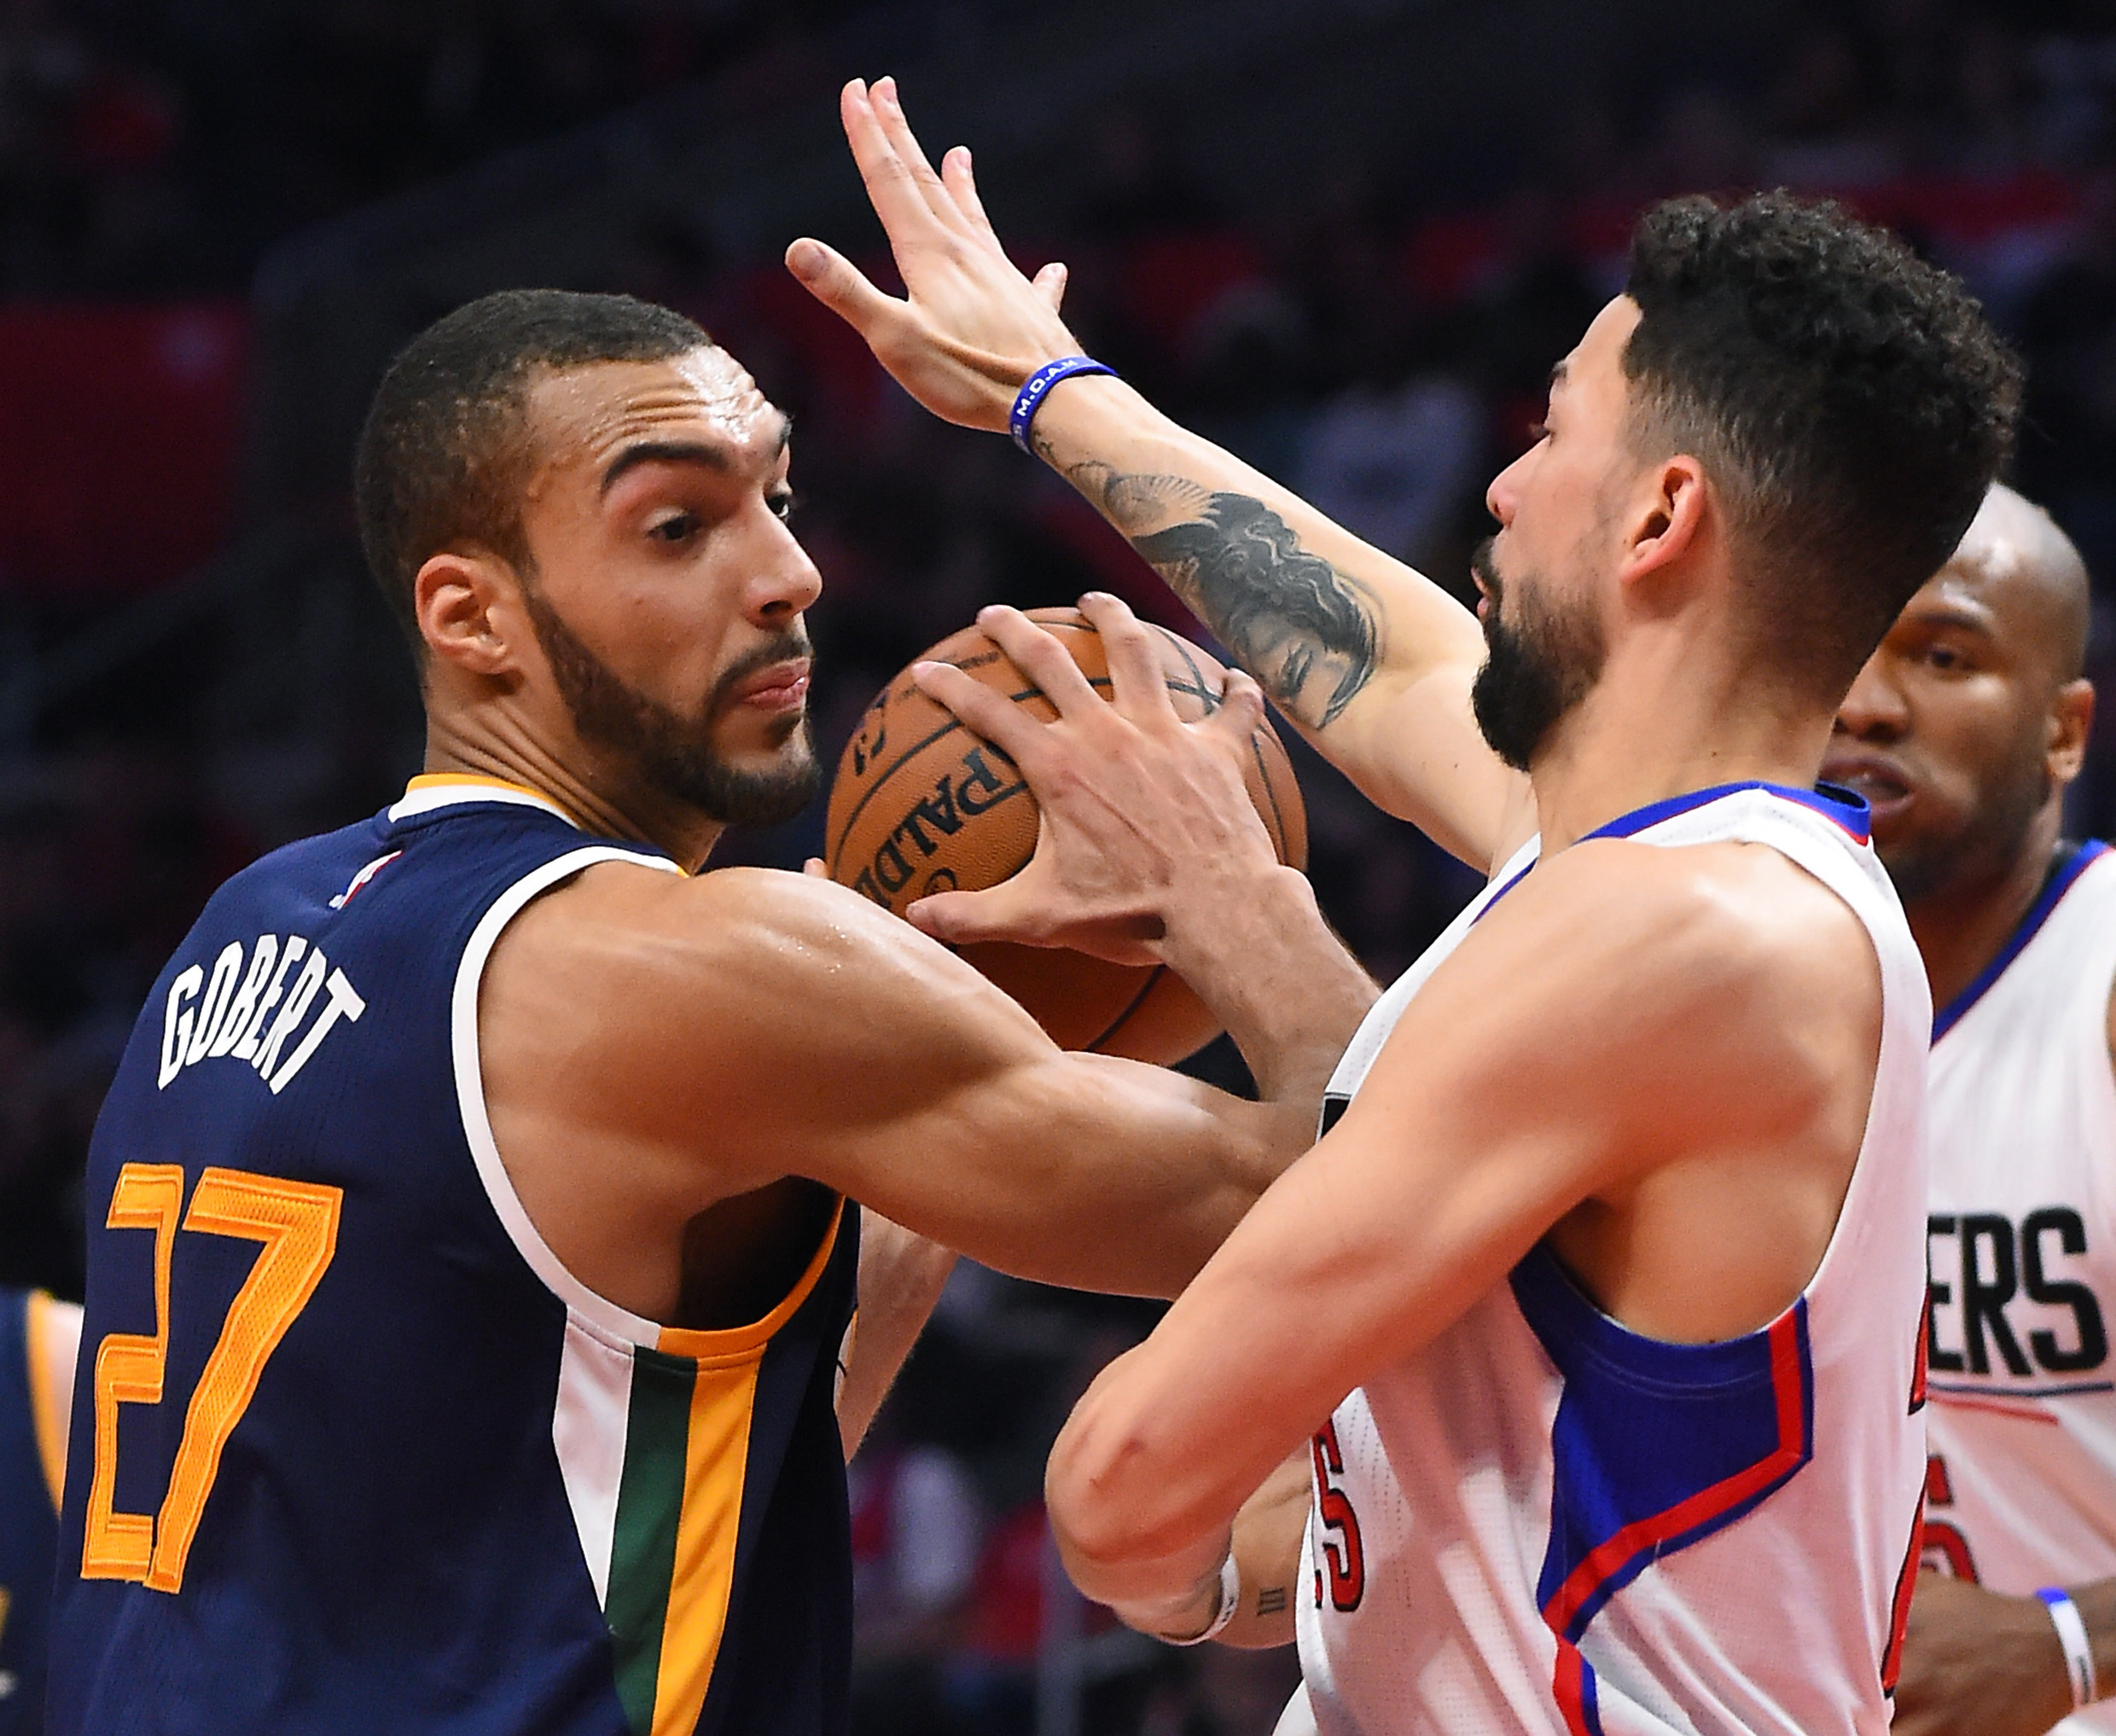 9970231-nba-utah-jazz-at-los-angeles-clippers-1